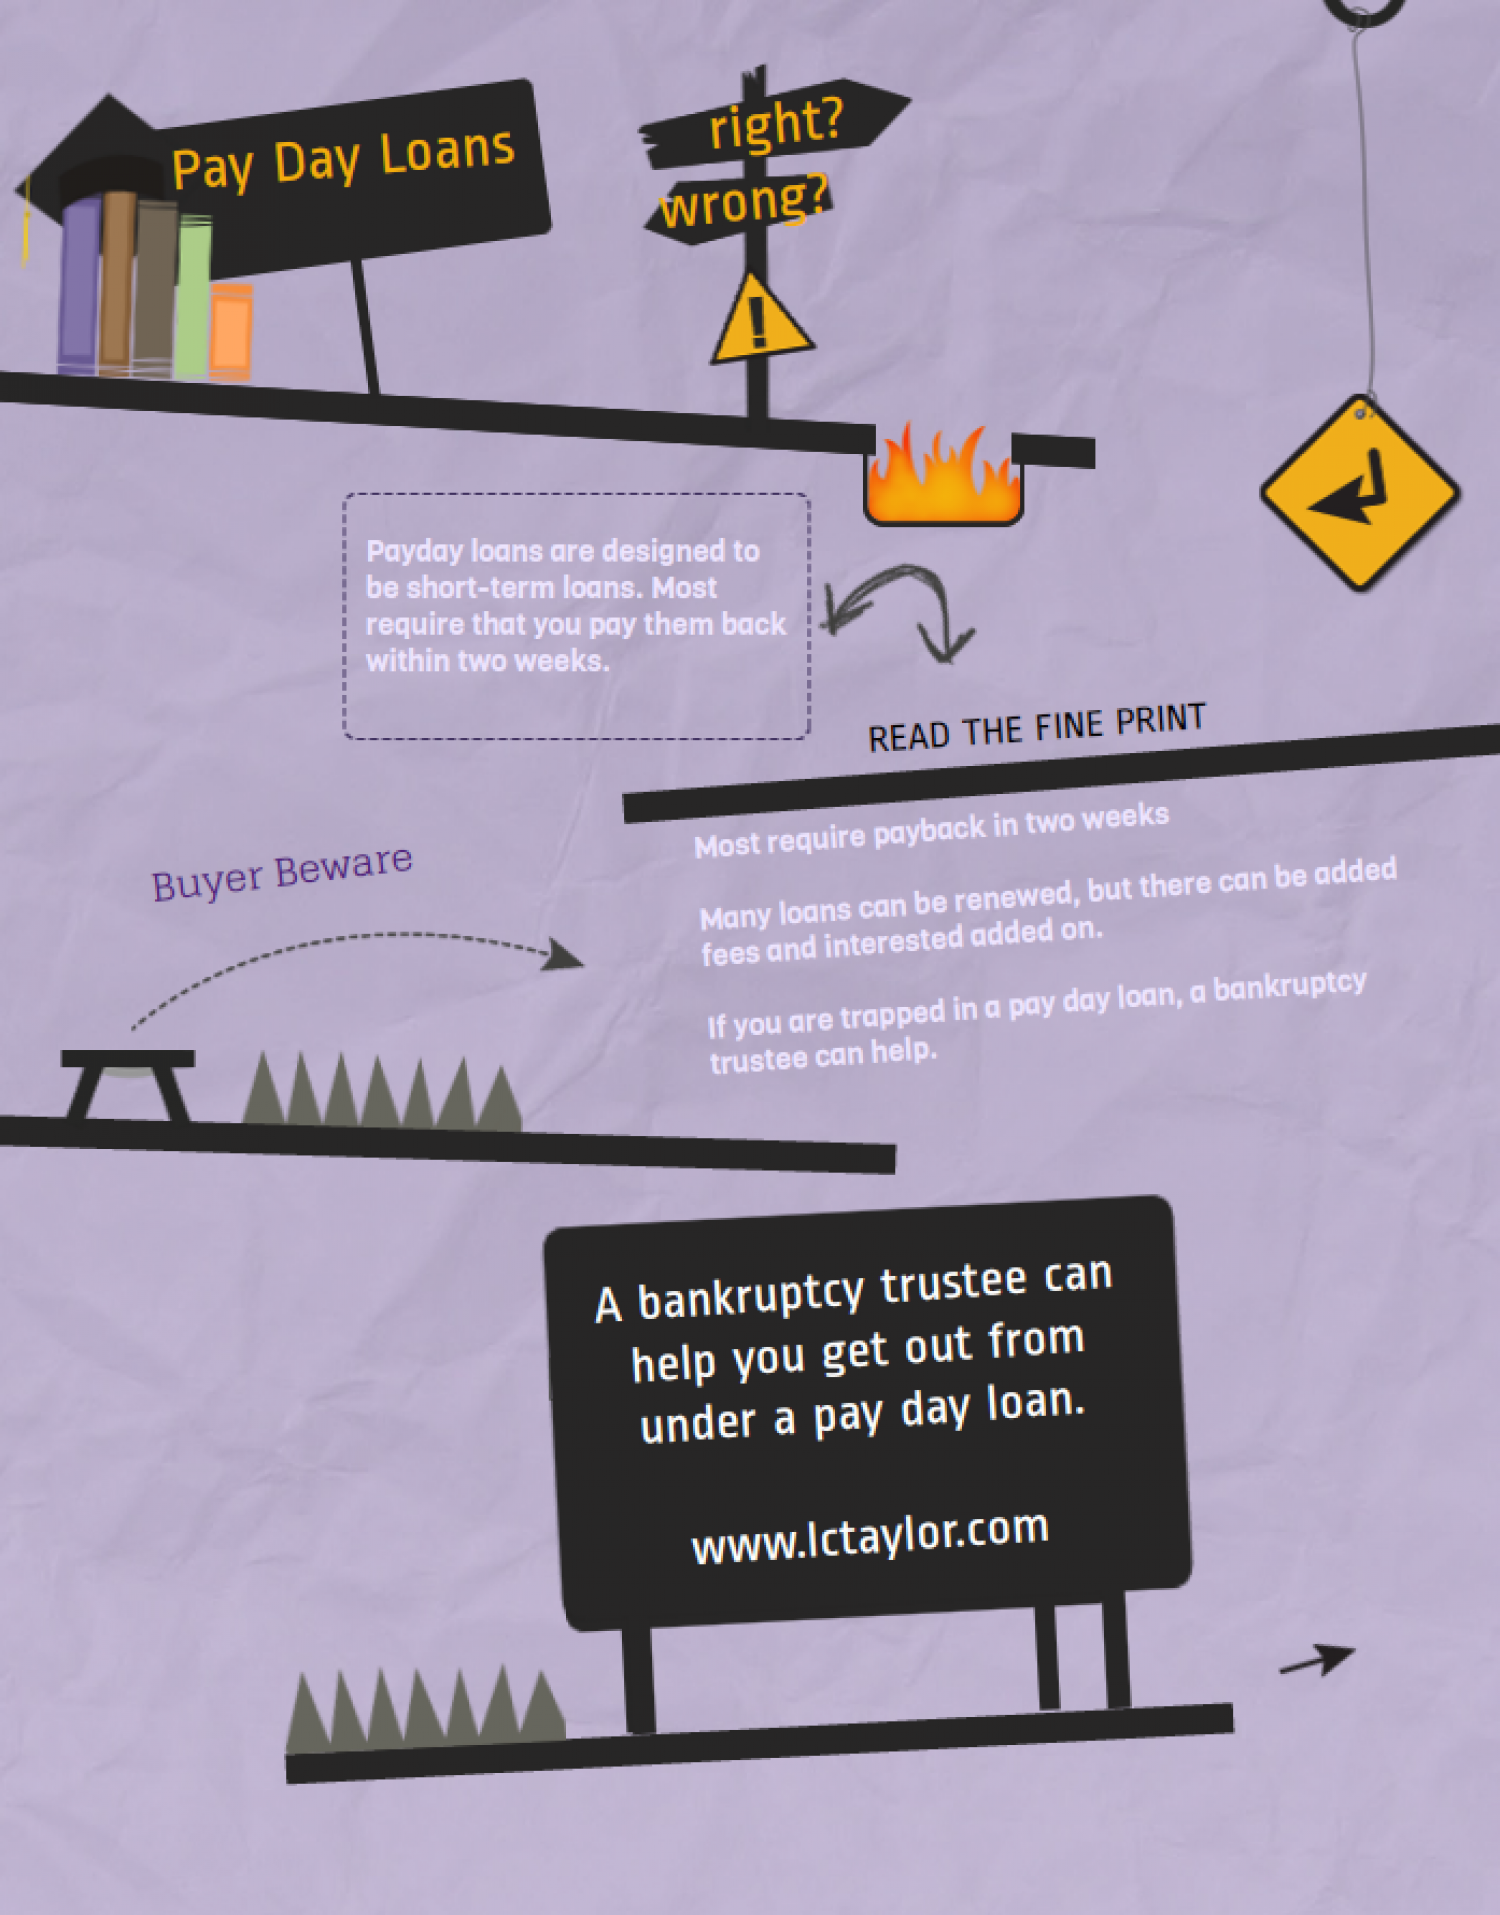 Pay Day Loans Infographic